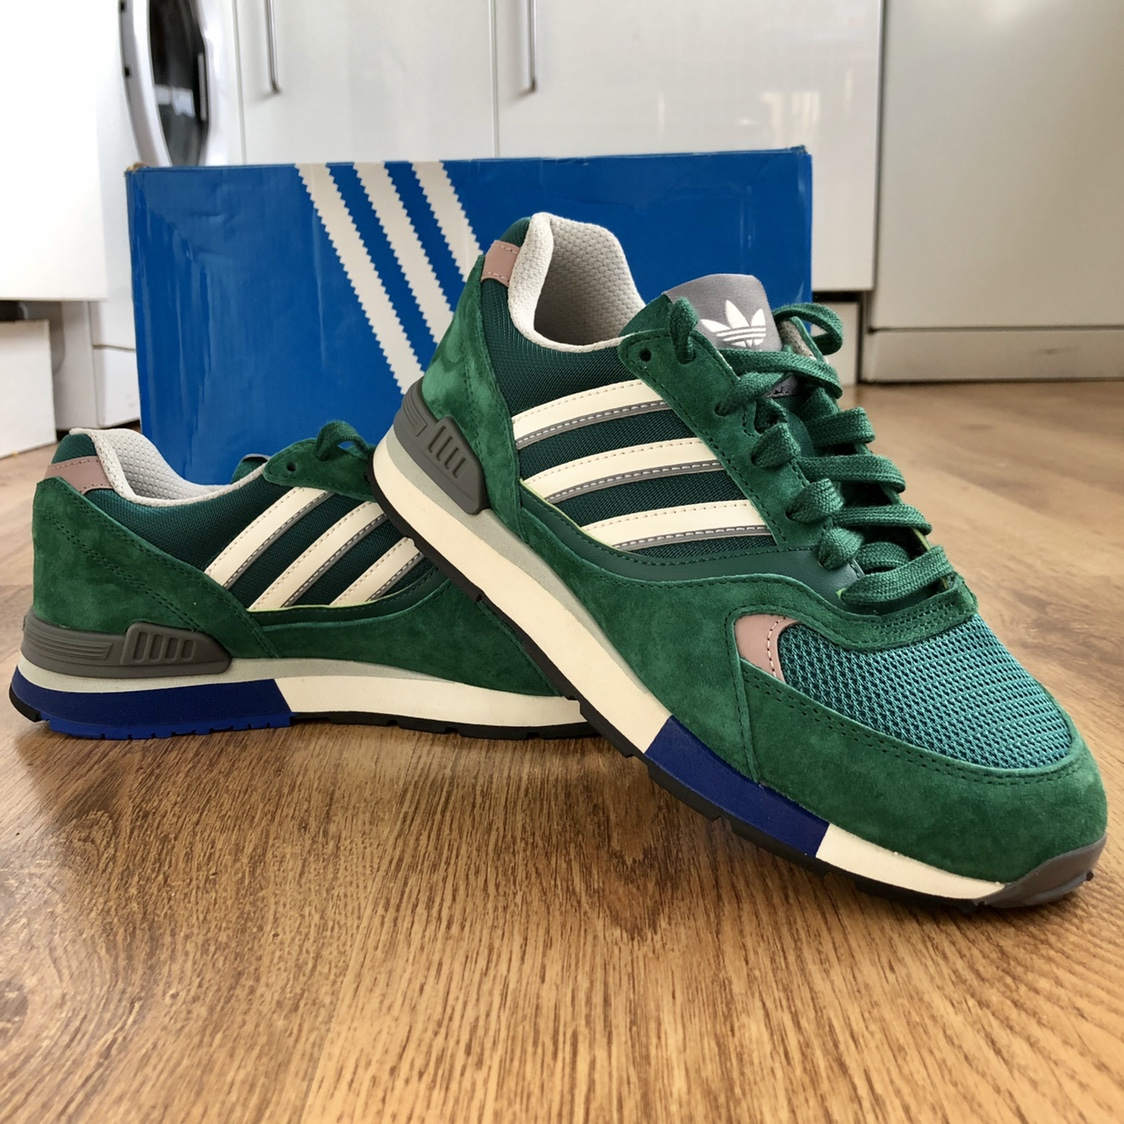 Adidas Quesence in green - Size 6